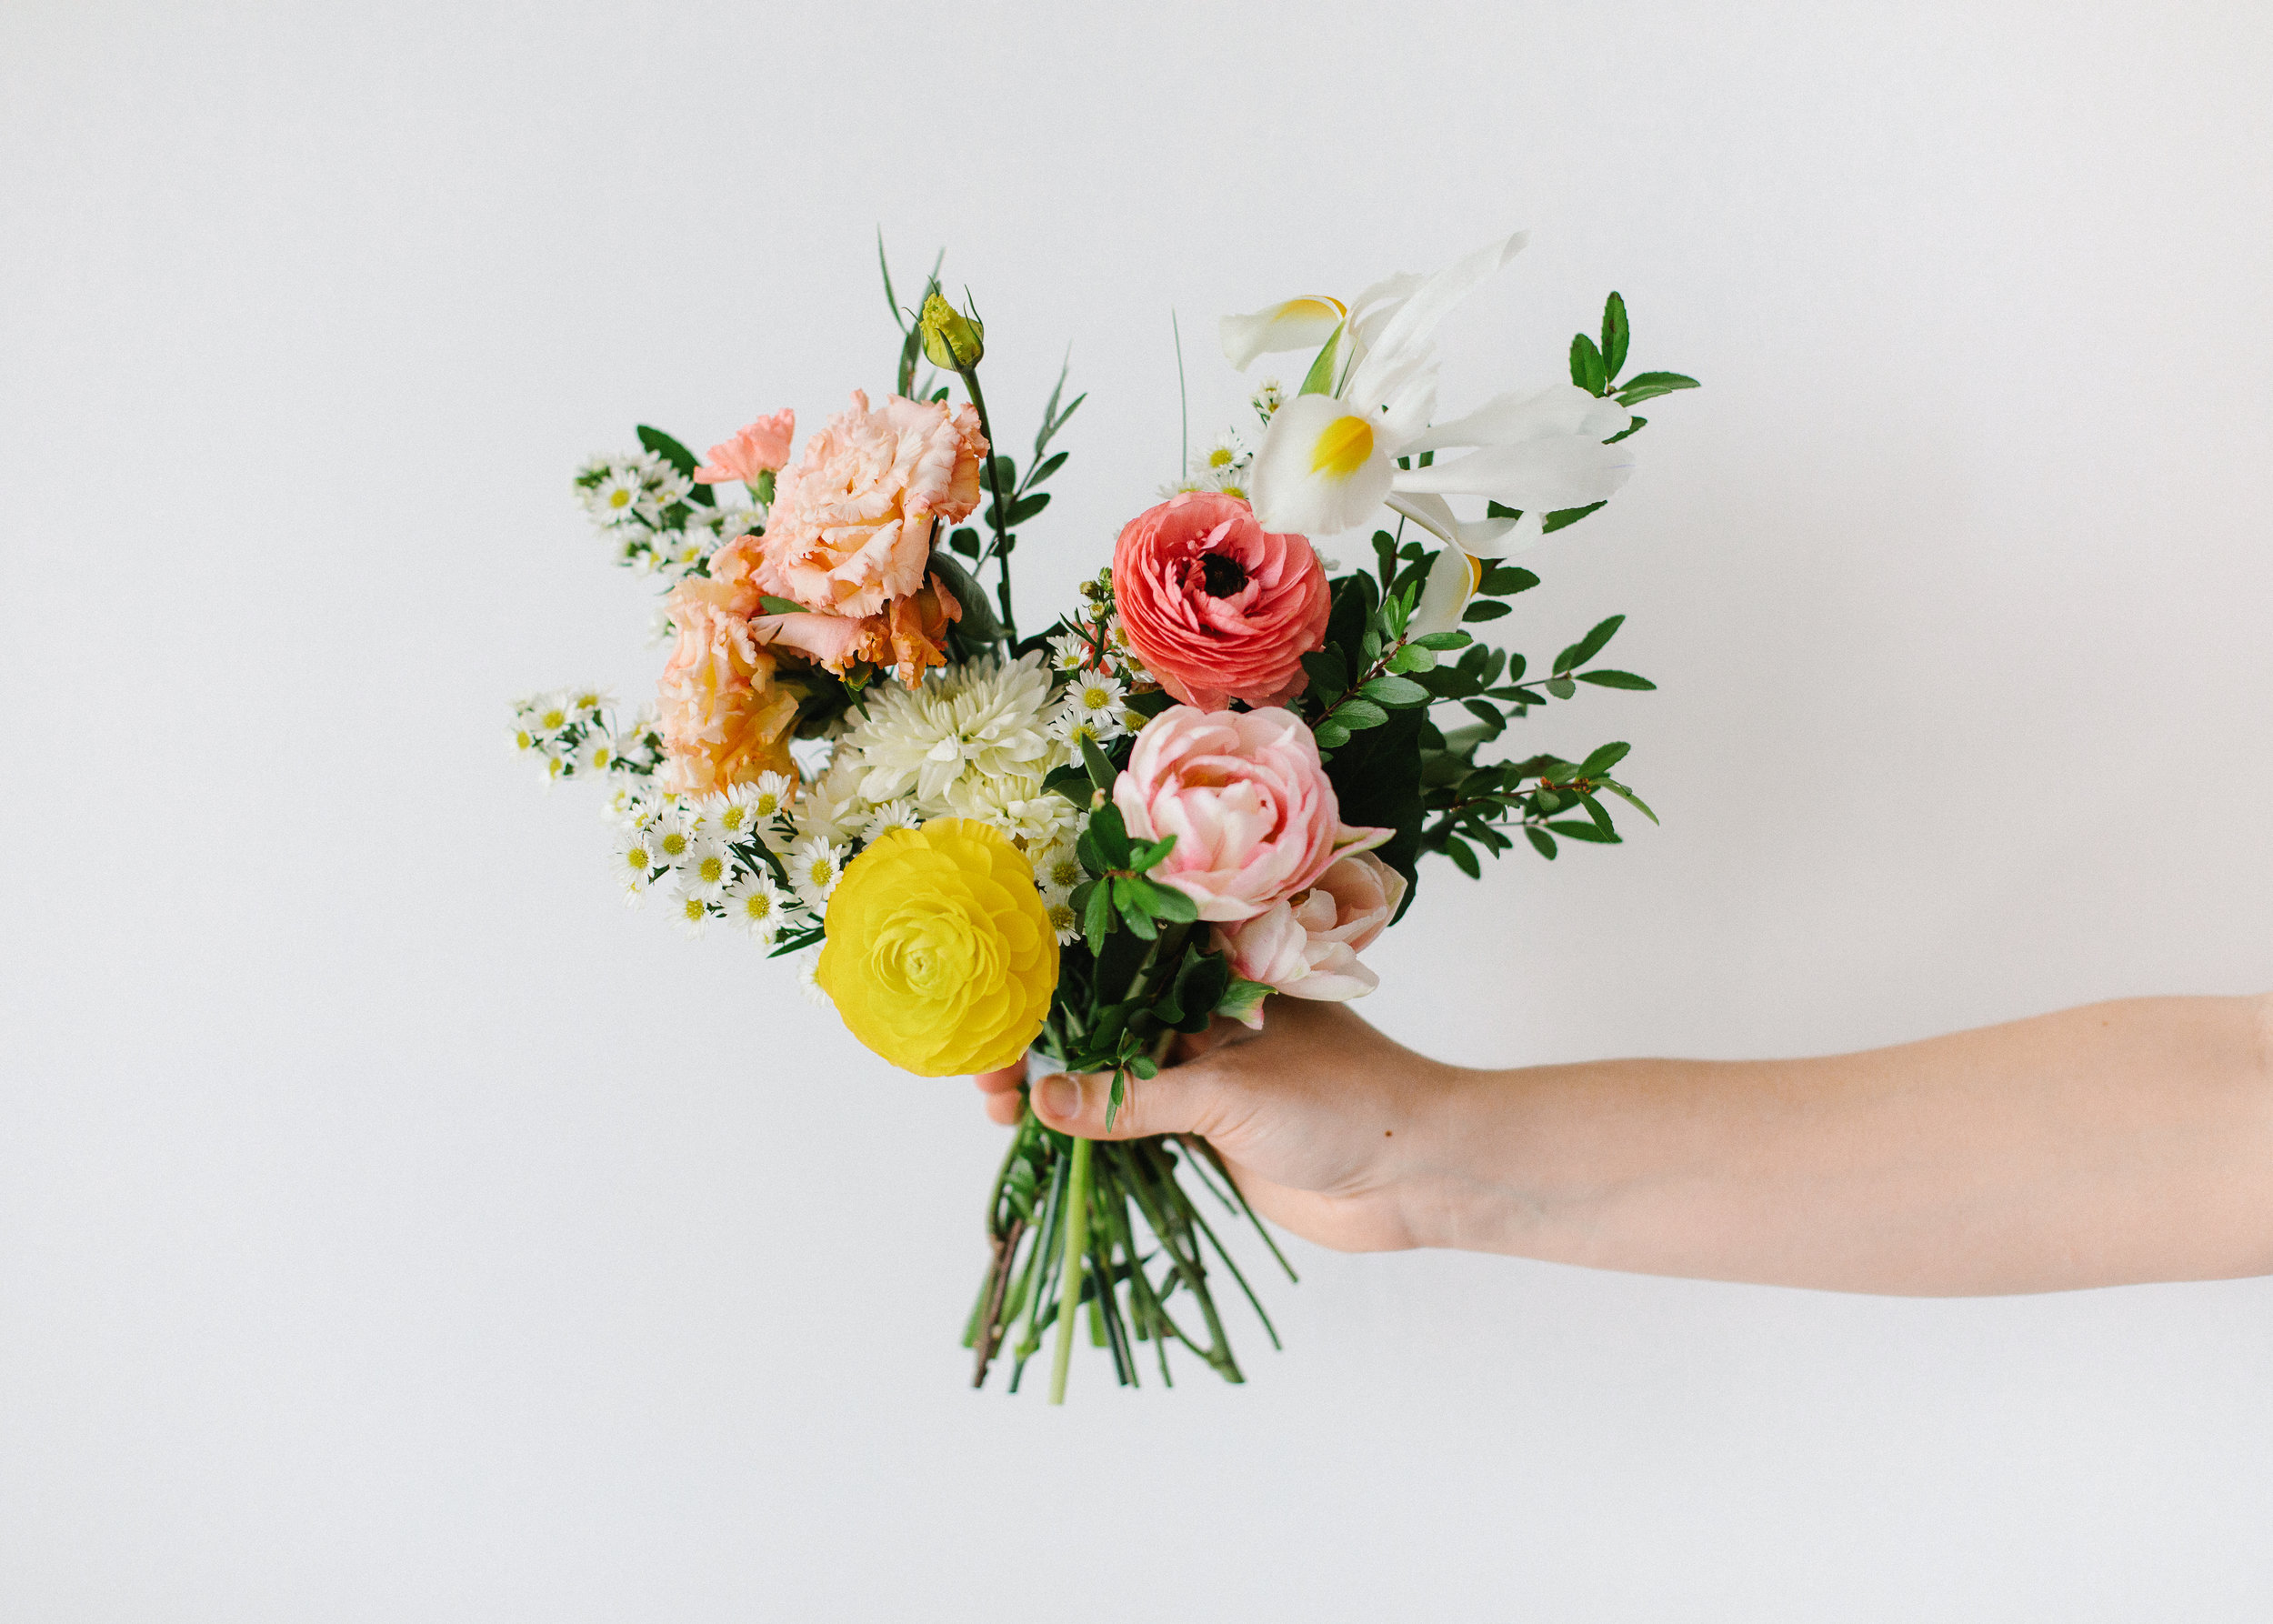 FLOWER SUBSCRIPTIONS - For the love of flowers. Bring the beauty of the garden indoors with the convenience of a monthly subscription. Learn More